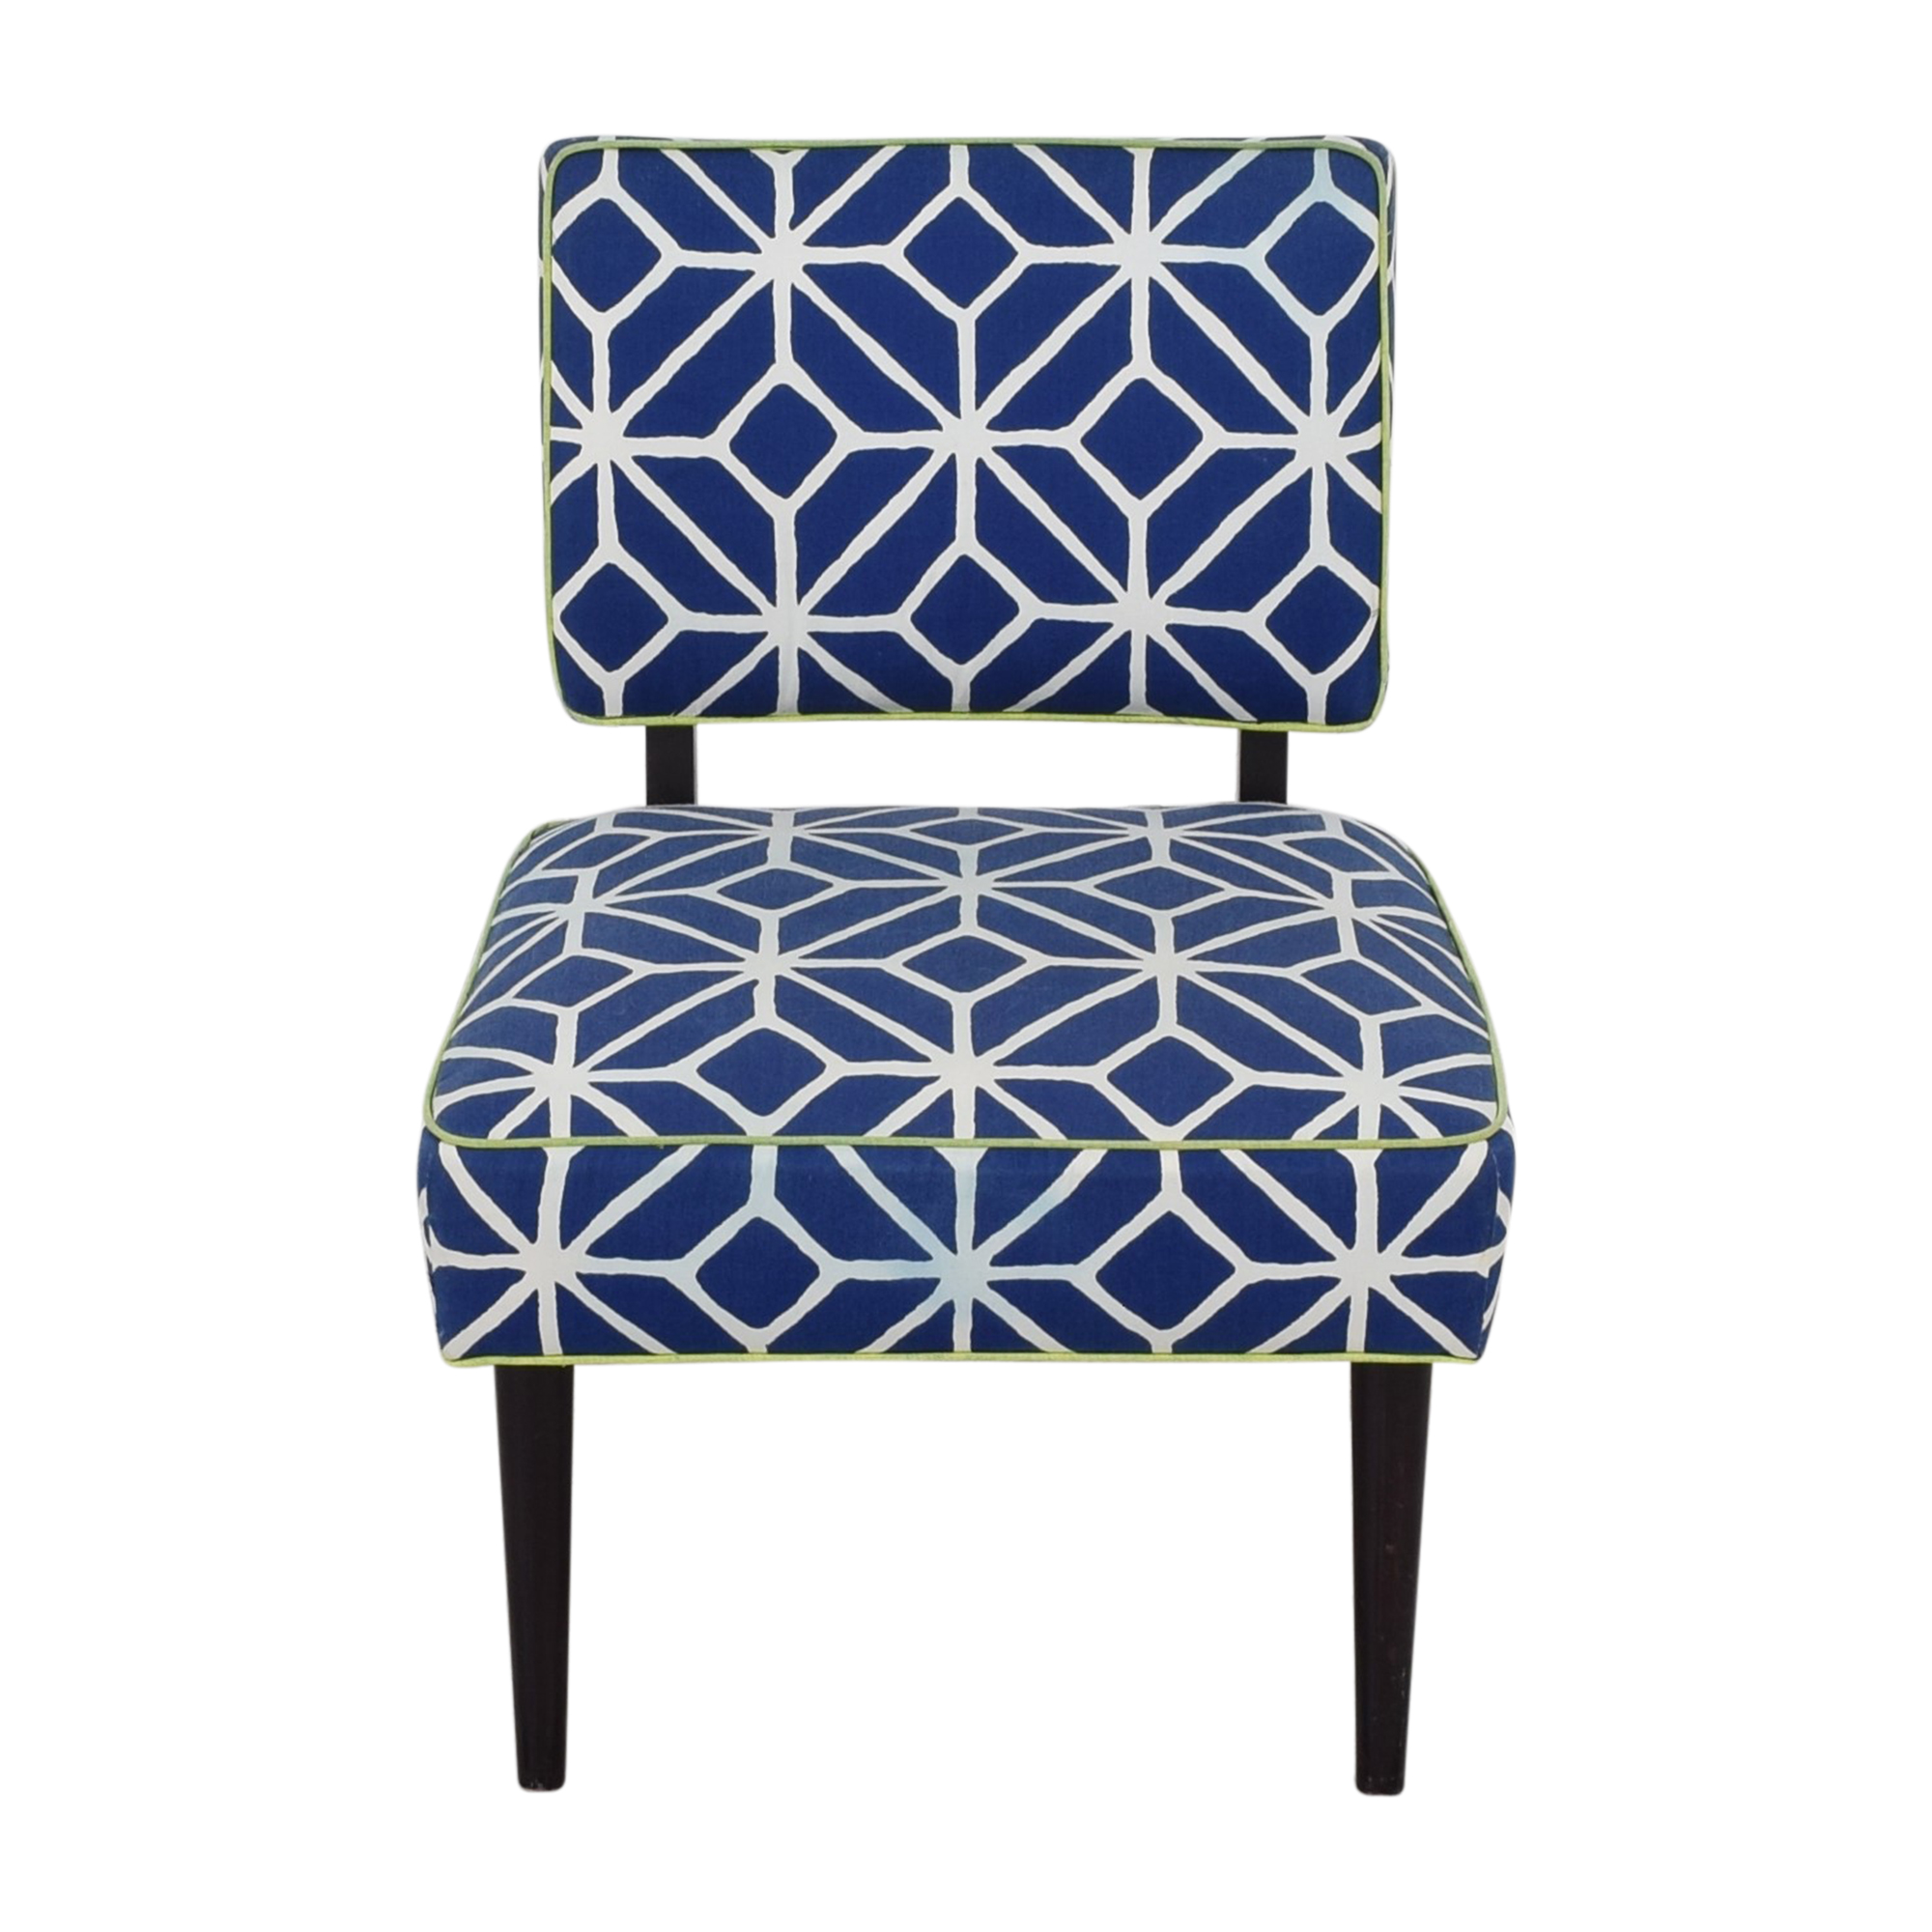 buy Room & Board Room & Board Accent Chair online